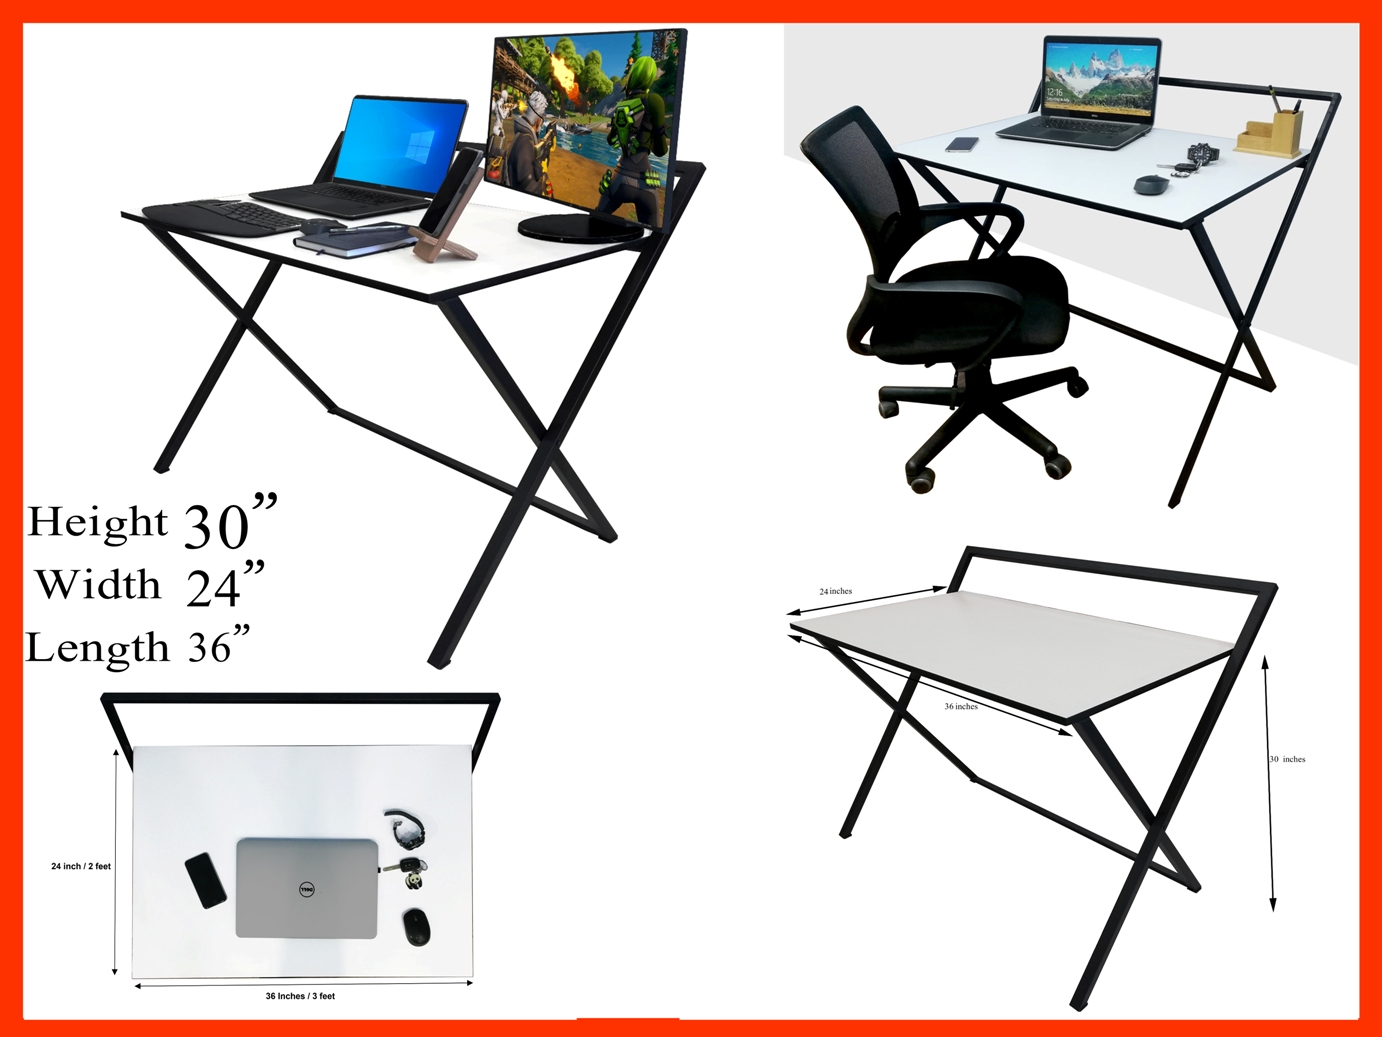 x Smart Portable Folding Study Table Office Workstation Multipurpose Table 36x24 Inches Metal Frame MDF Top